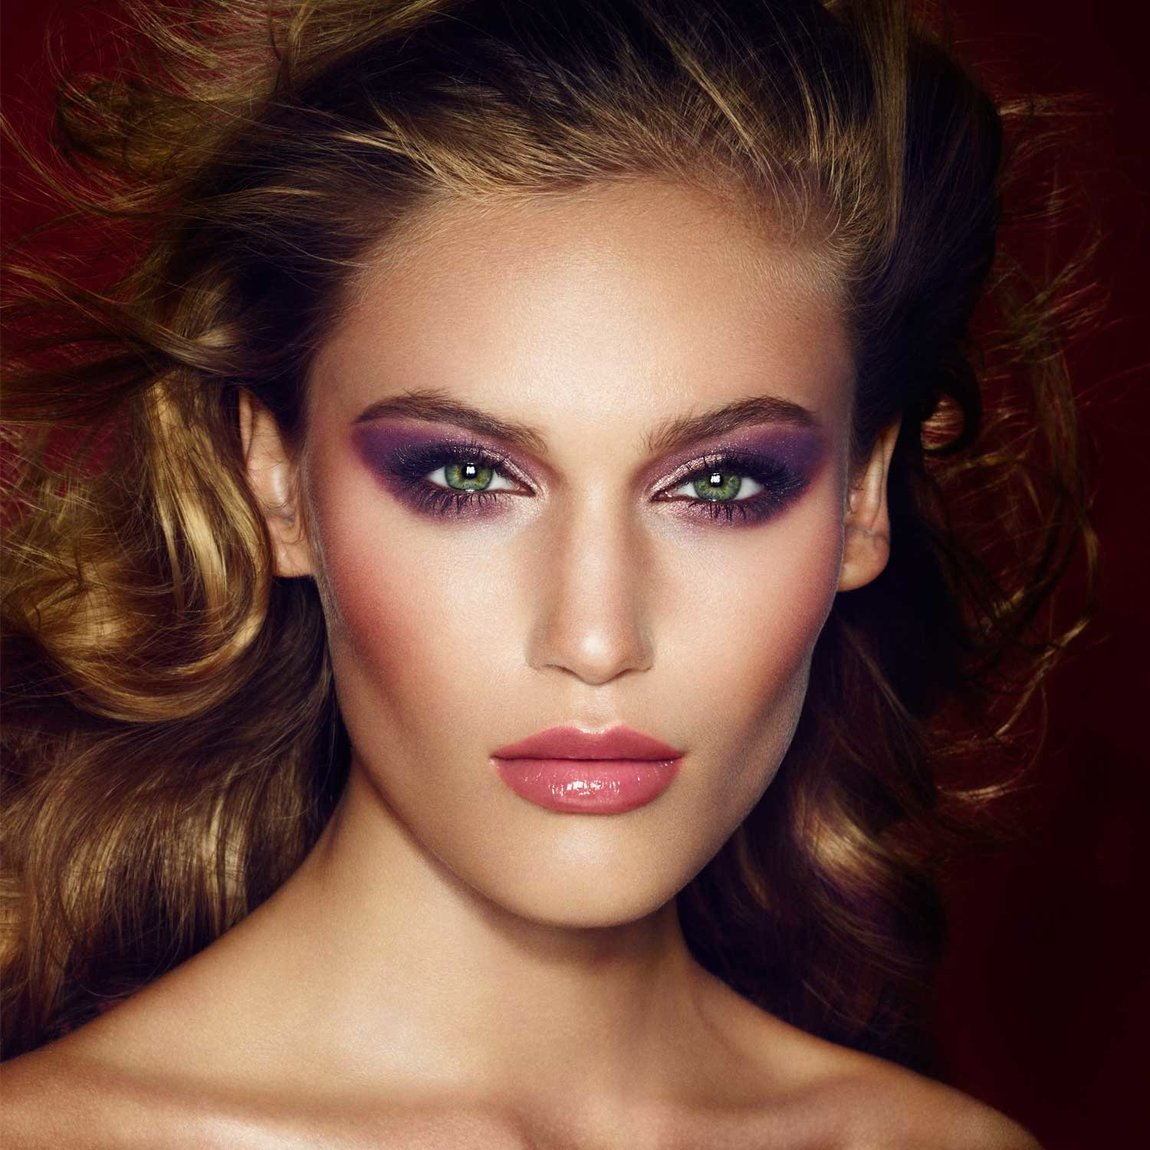 Charlotte Tilbury Get the Look The Glamour Muse product smear.